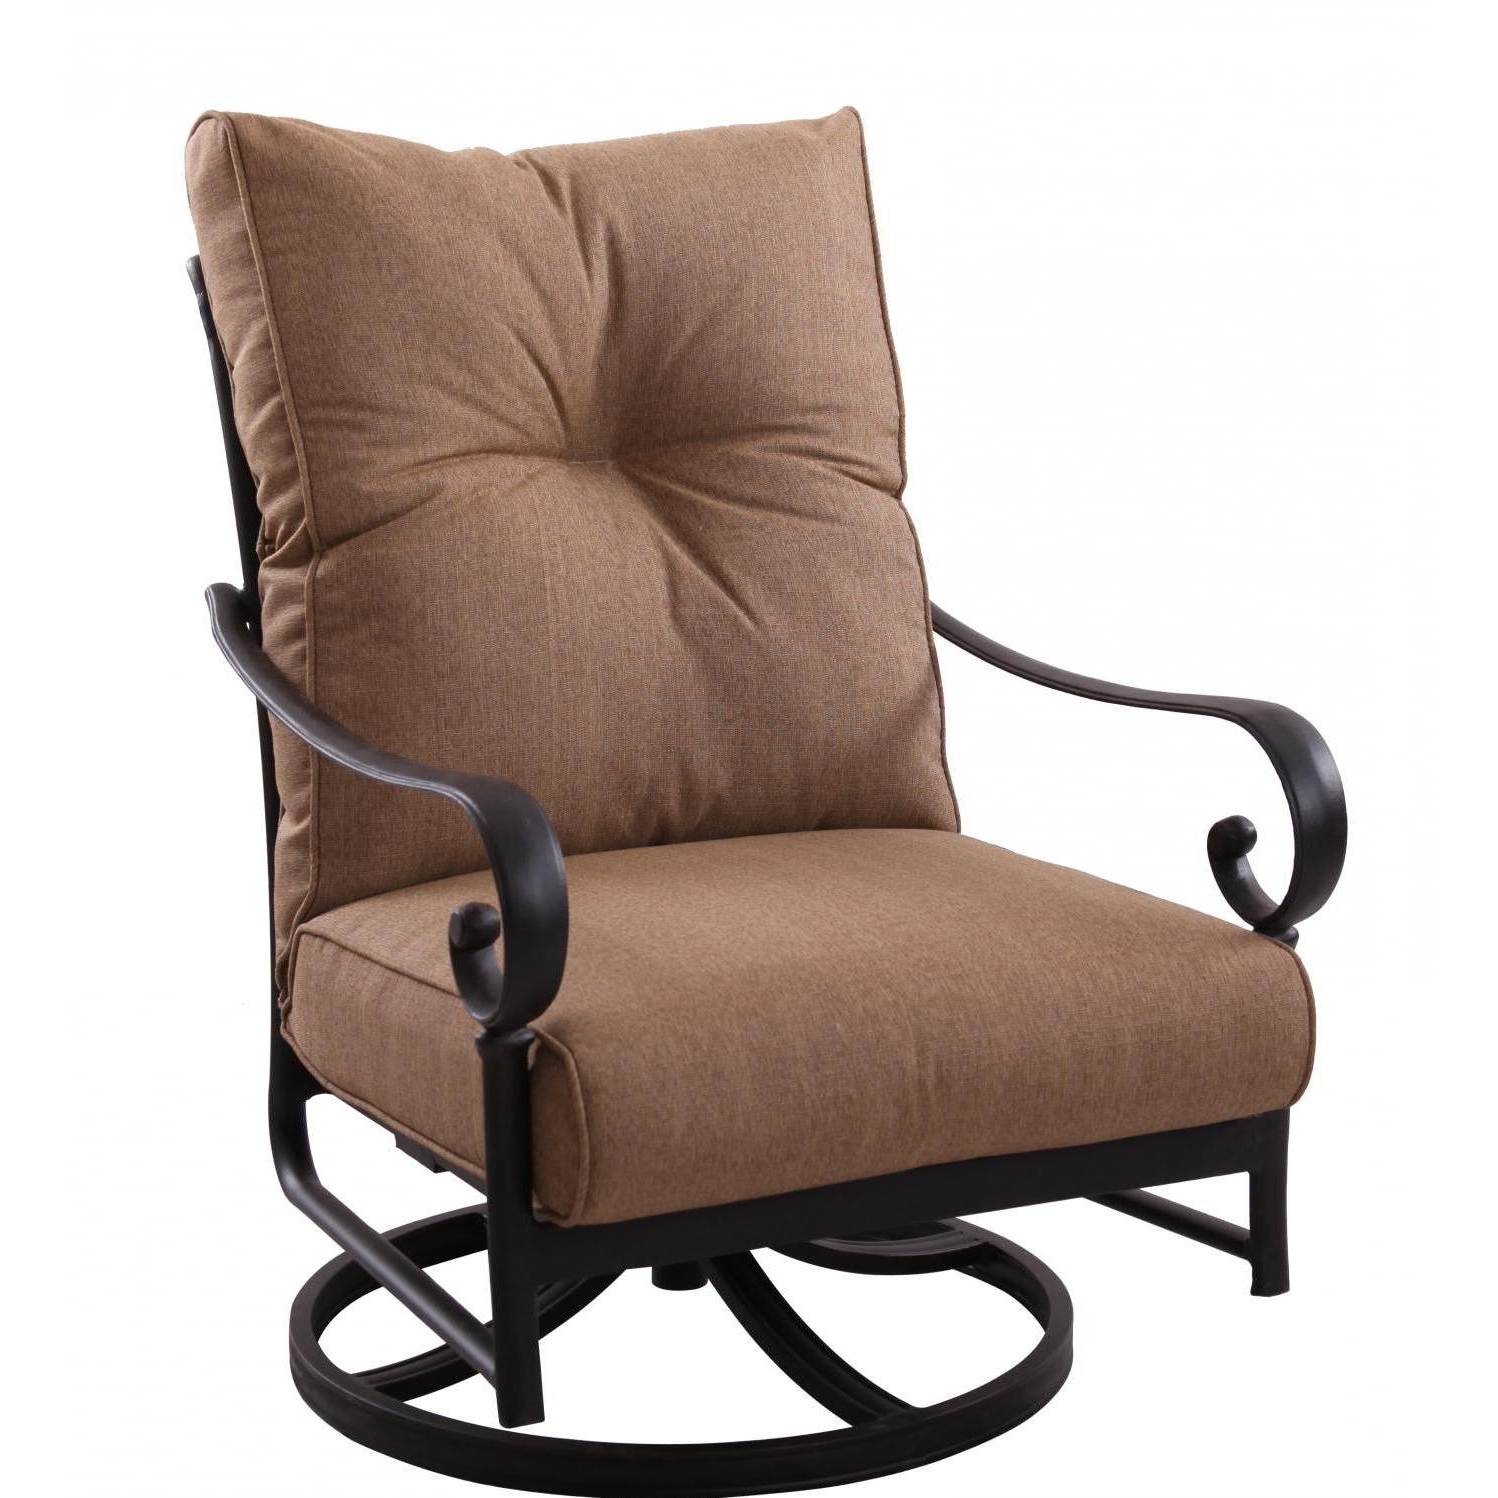 Patio Rocking Swivel Chairs Throughout Popular Darlee Santa Anita 3 Piece Aluminum Patio Conversation Seating Set (View 13 of 20)